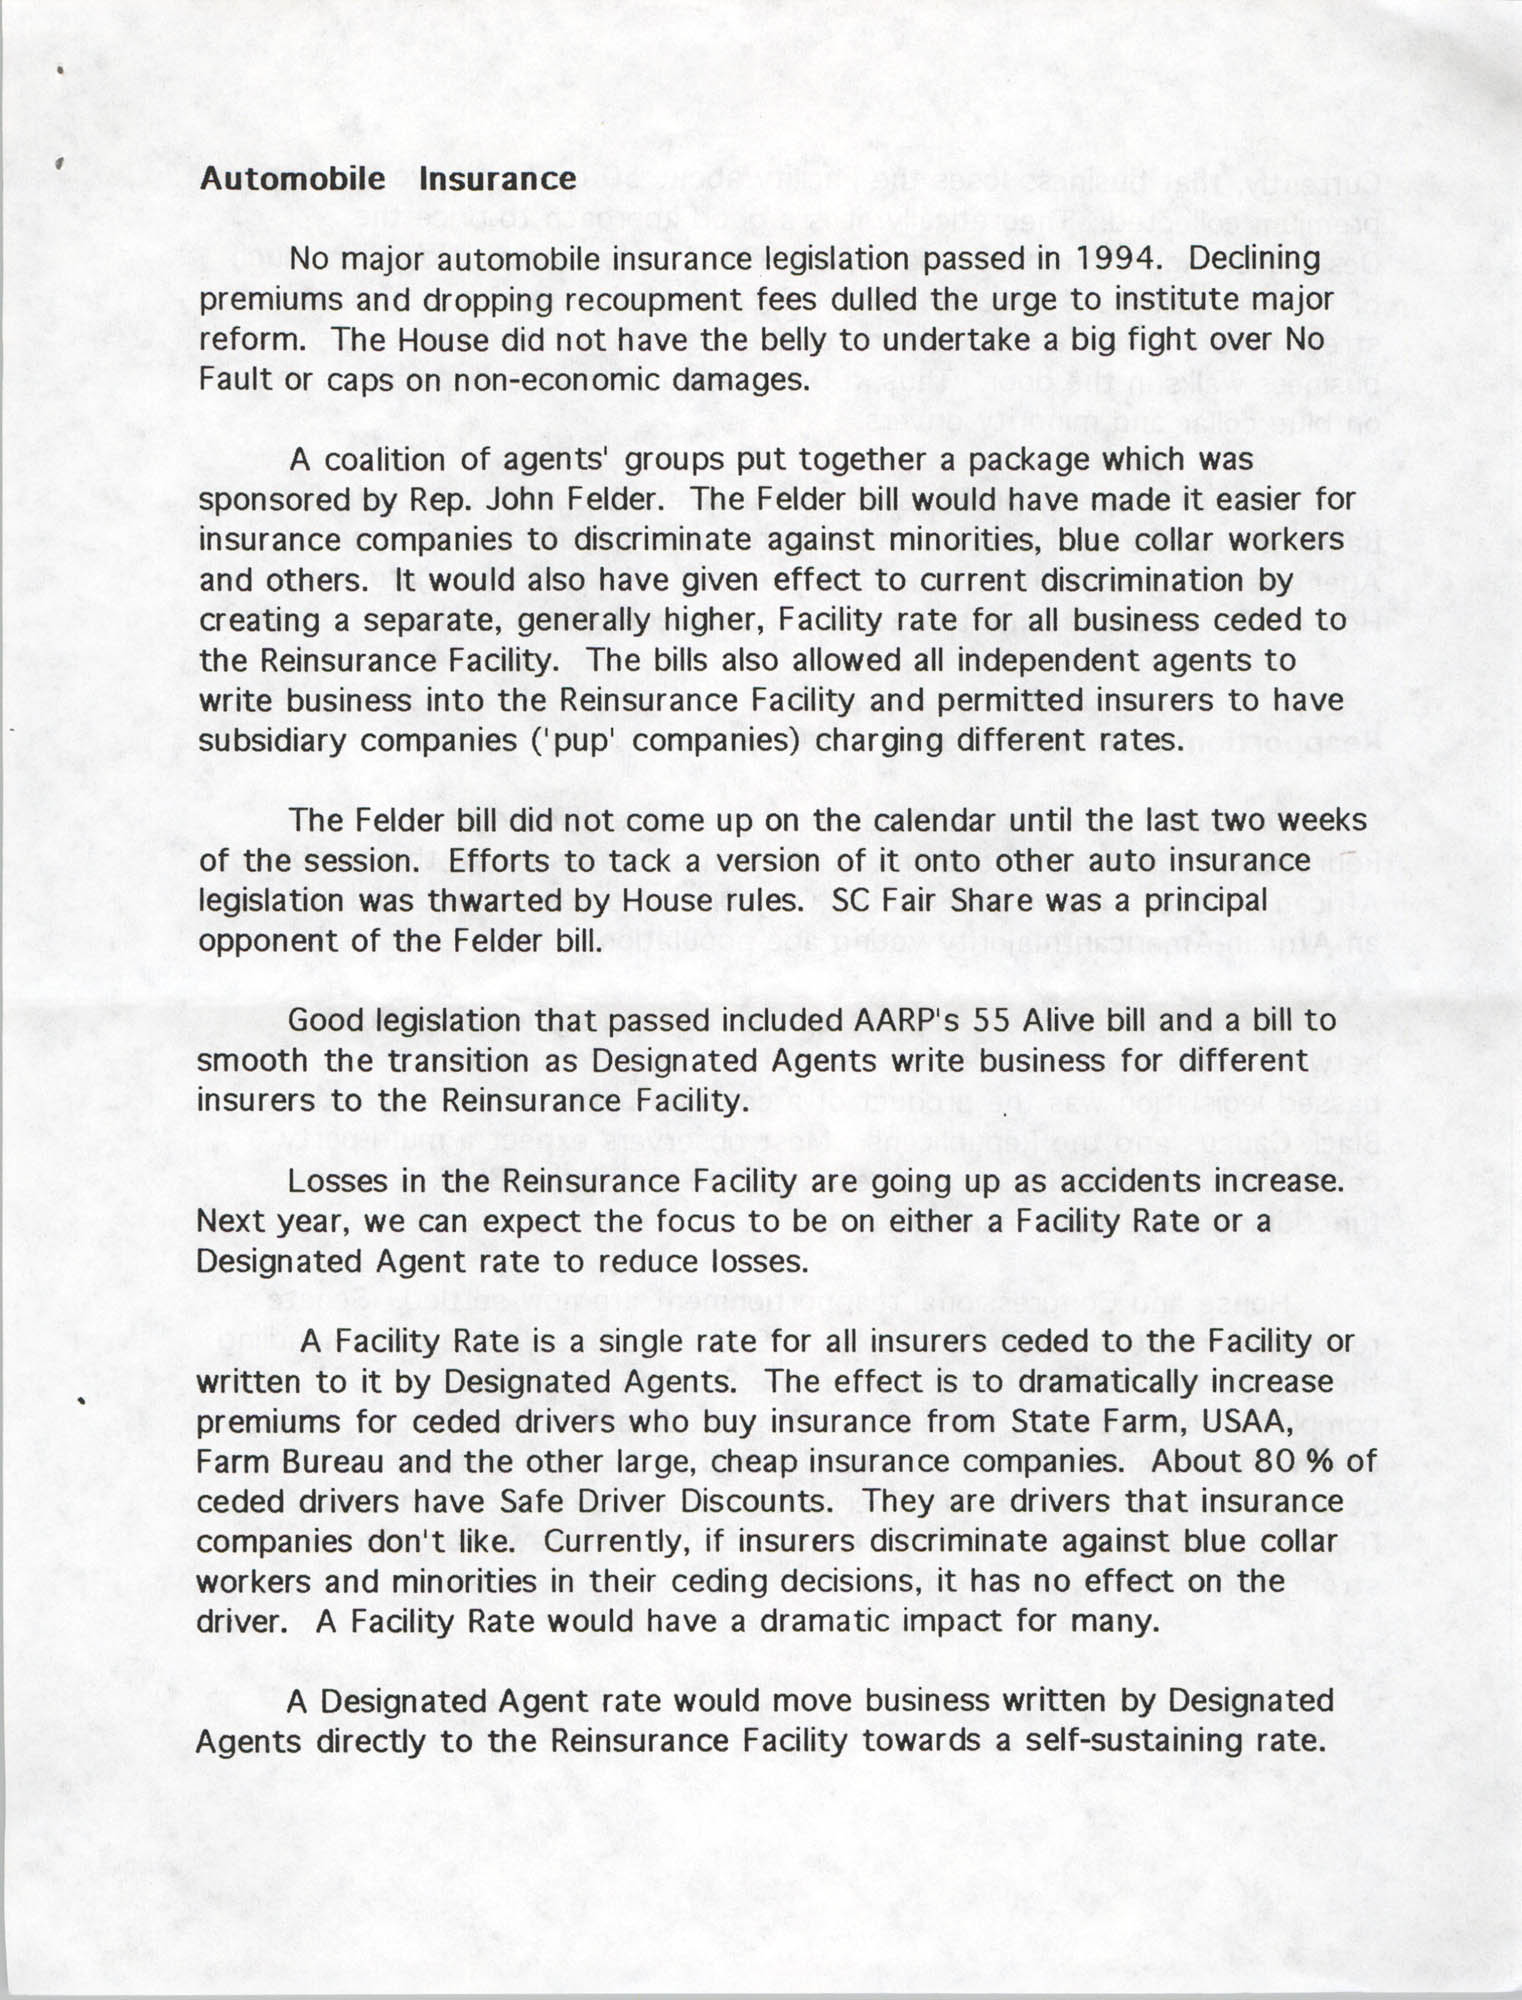 South Carolina Fair Share Legislative Update, June 30, 1994, Page 7